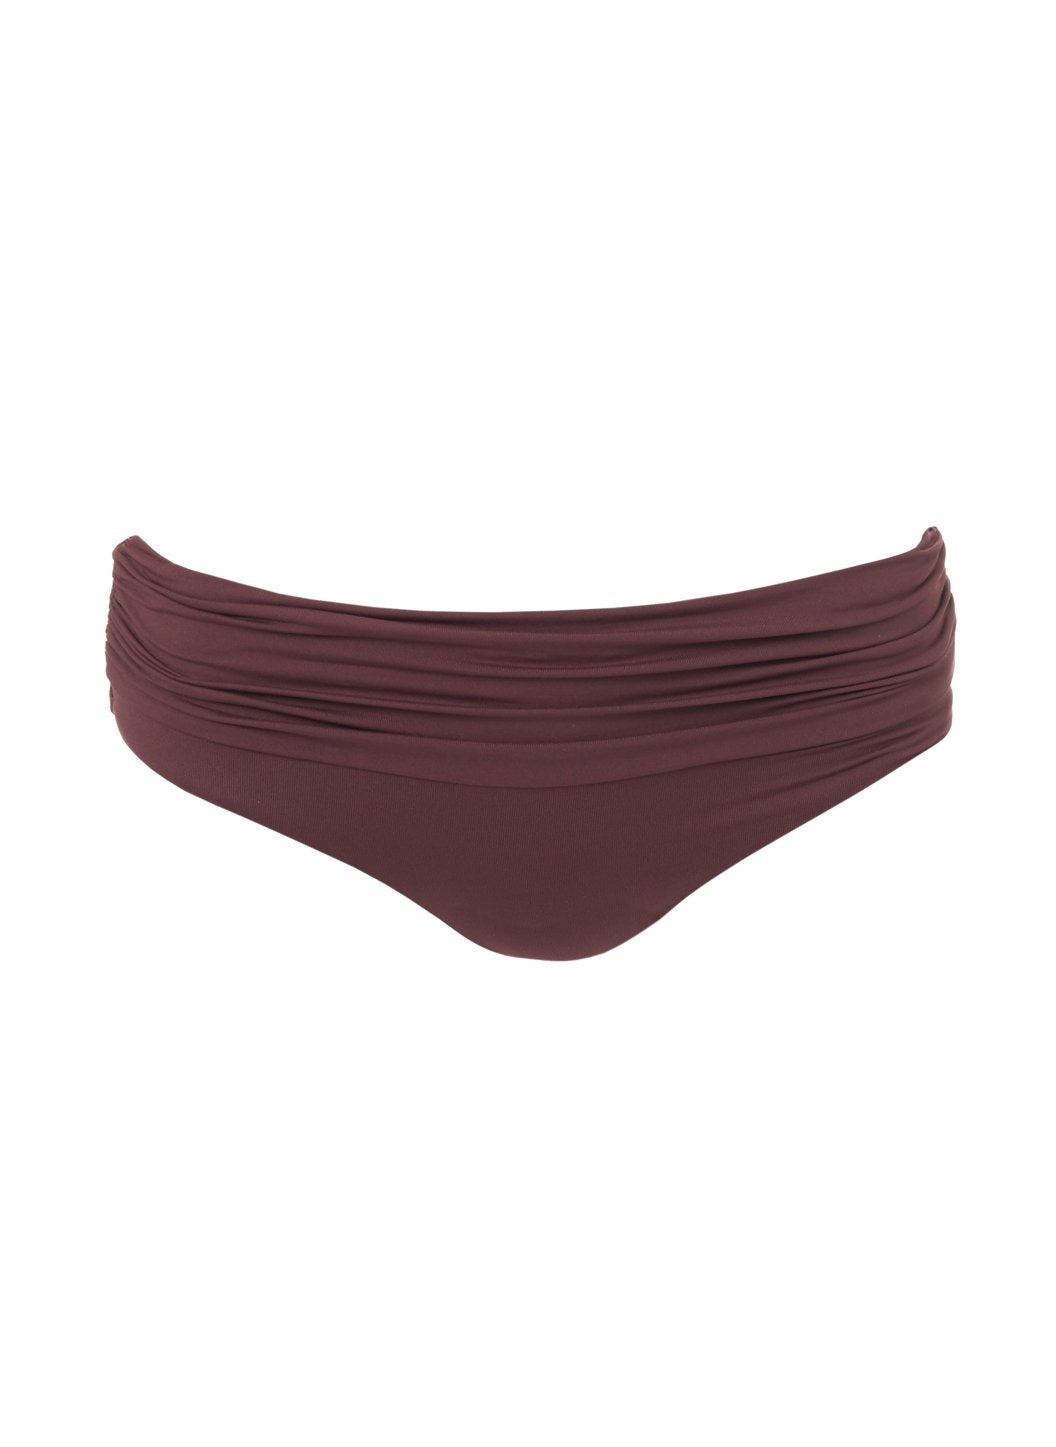 Belair Walnut Ruched Bikini Bottom